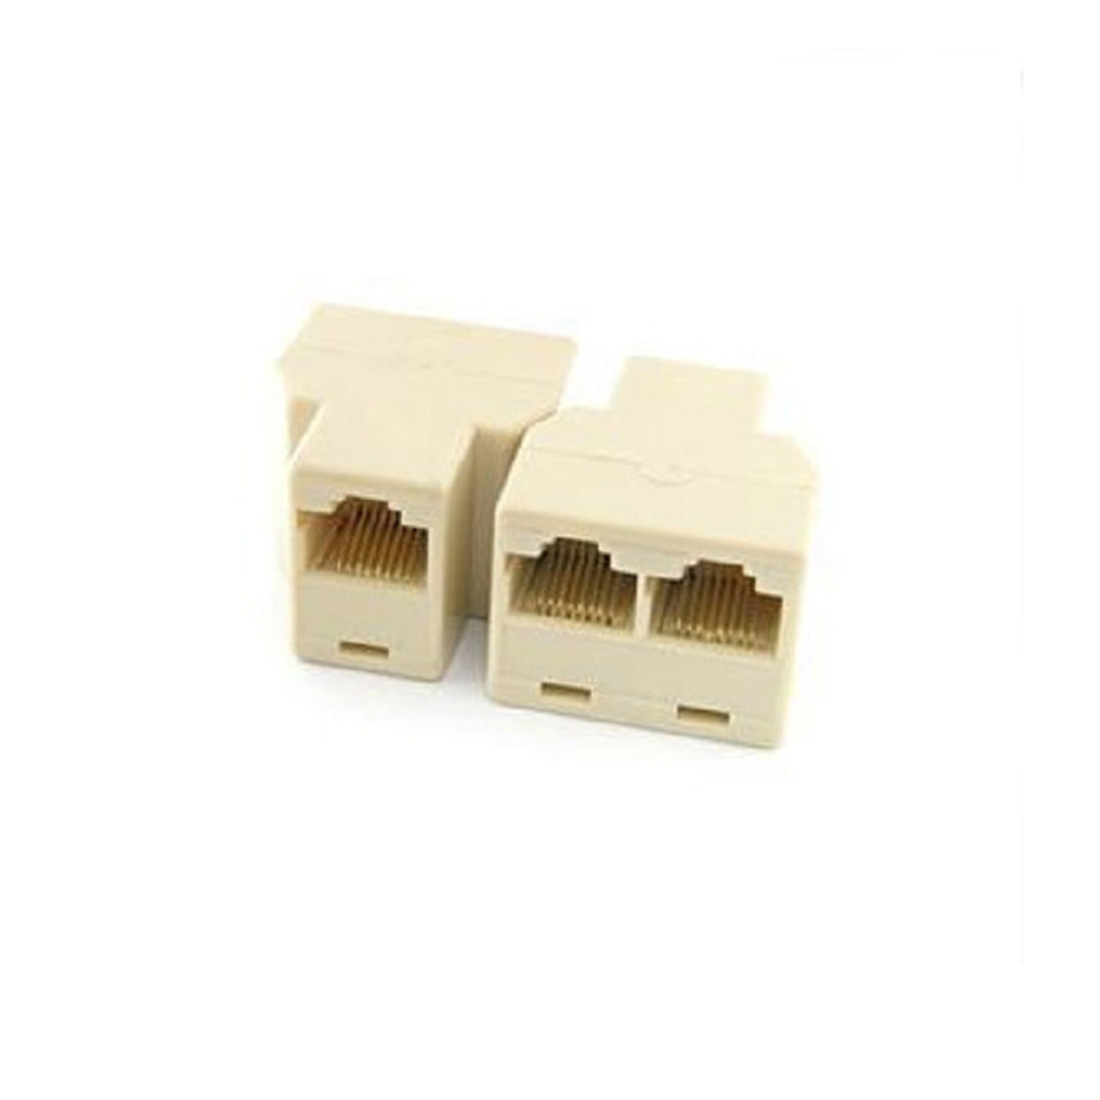 Hot Rj45 Ethernet Cable Lan Port 1 To 2 Socket Splitter Wiring Cat5 Connector Adapter 8p8c Network In Connectors From Lights